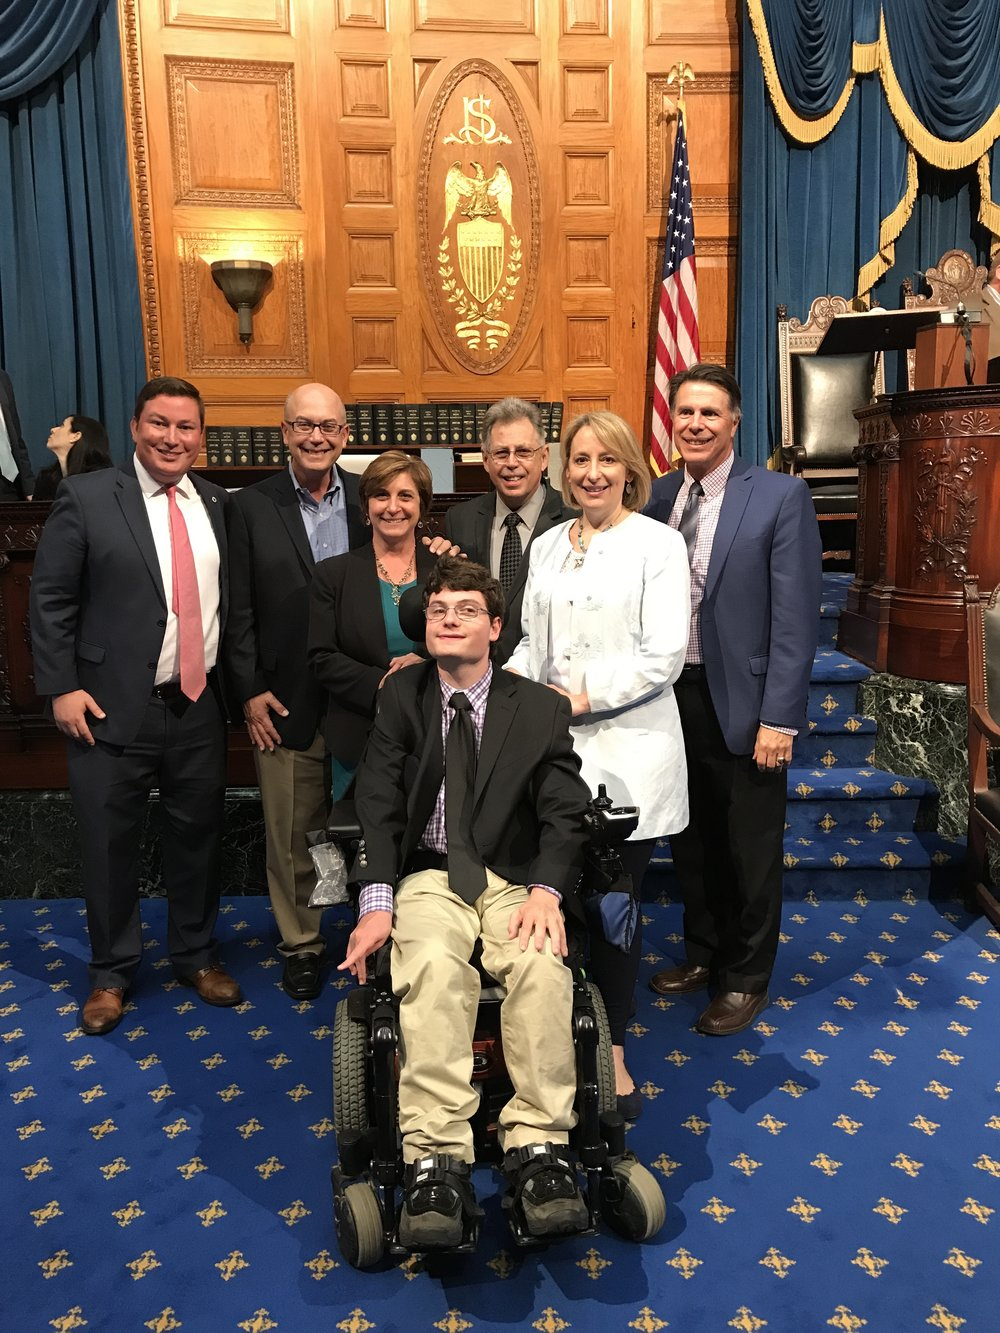 State House intern Sam Paster of Swampscott and his family